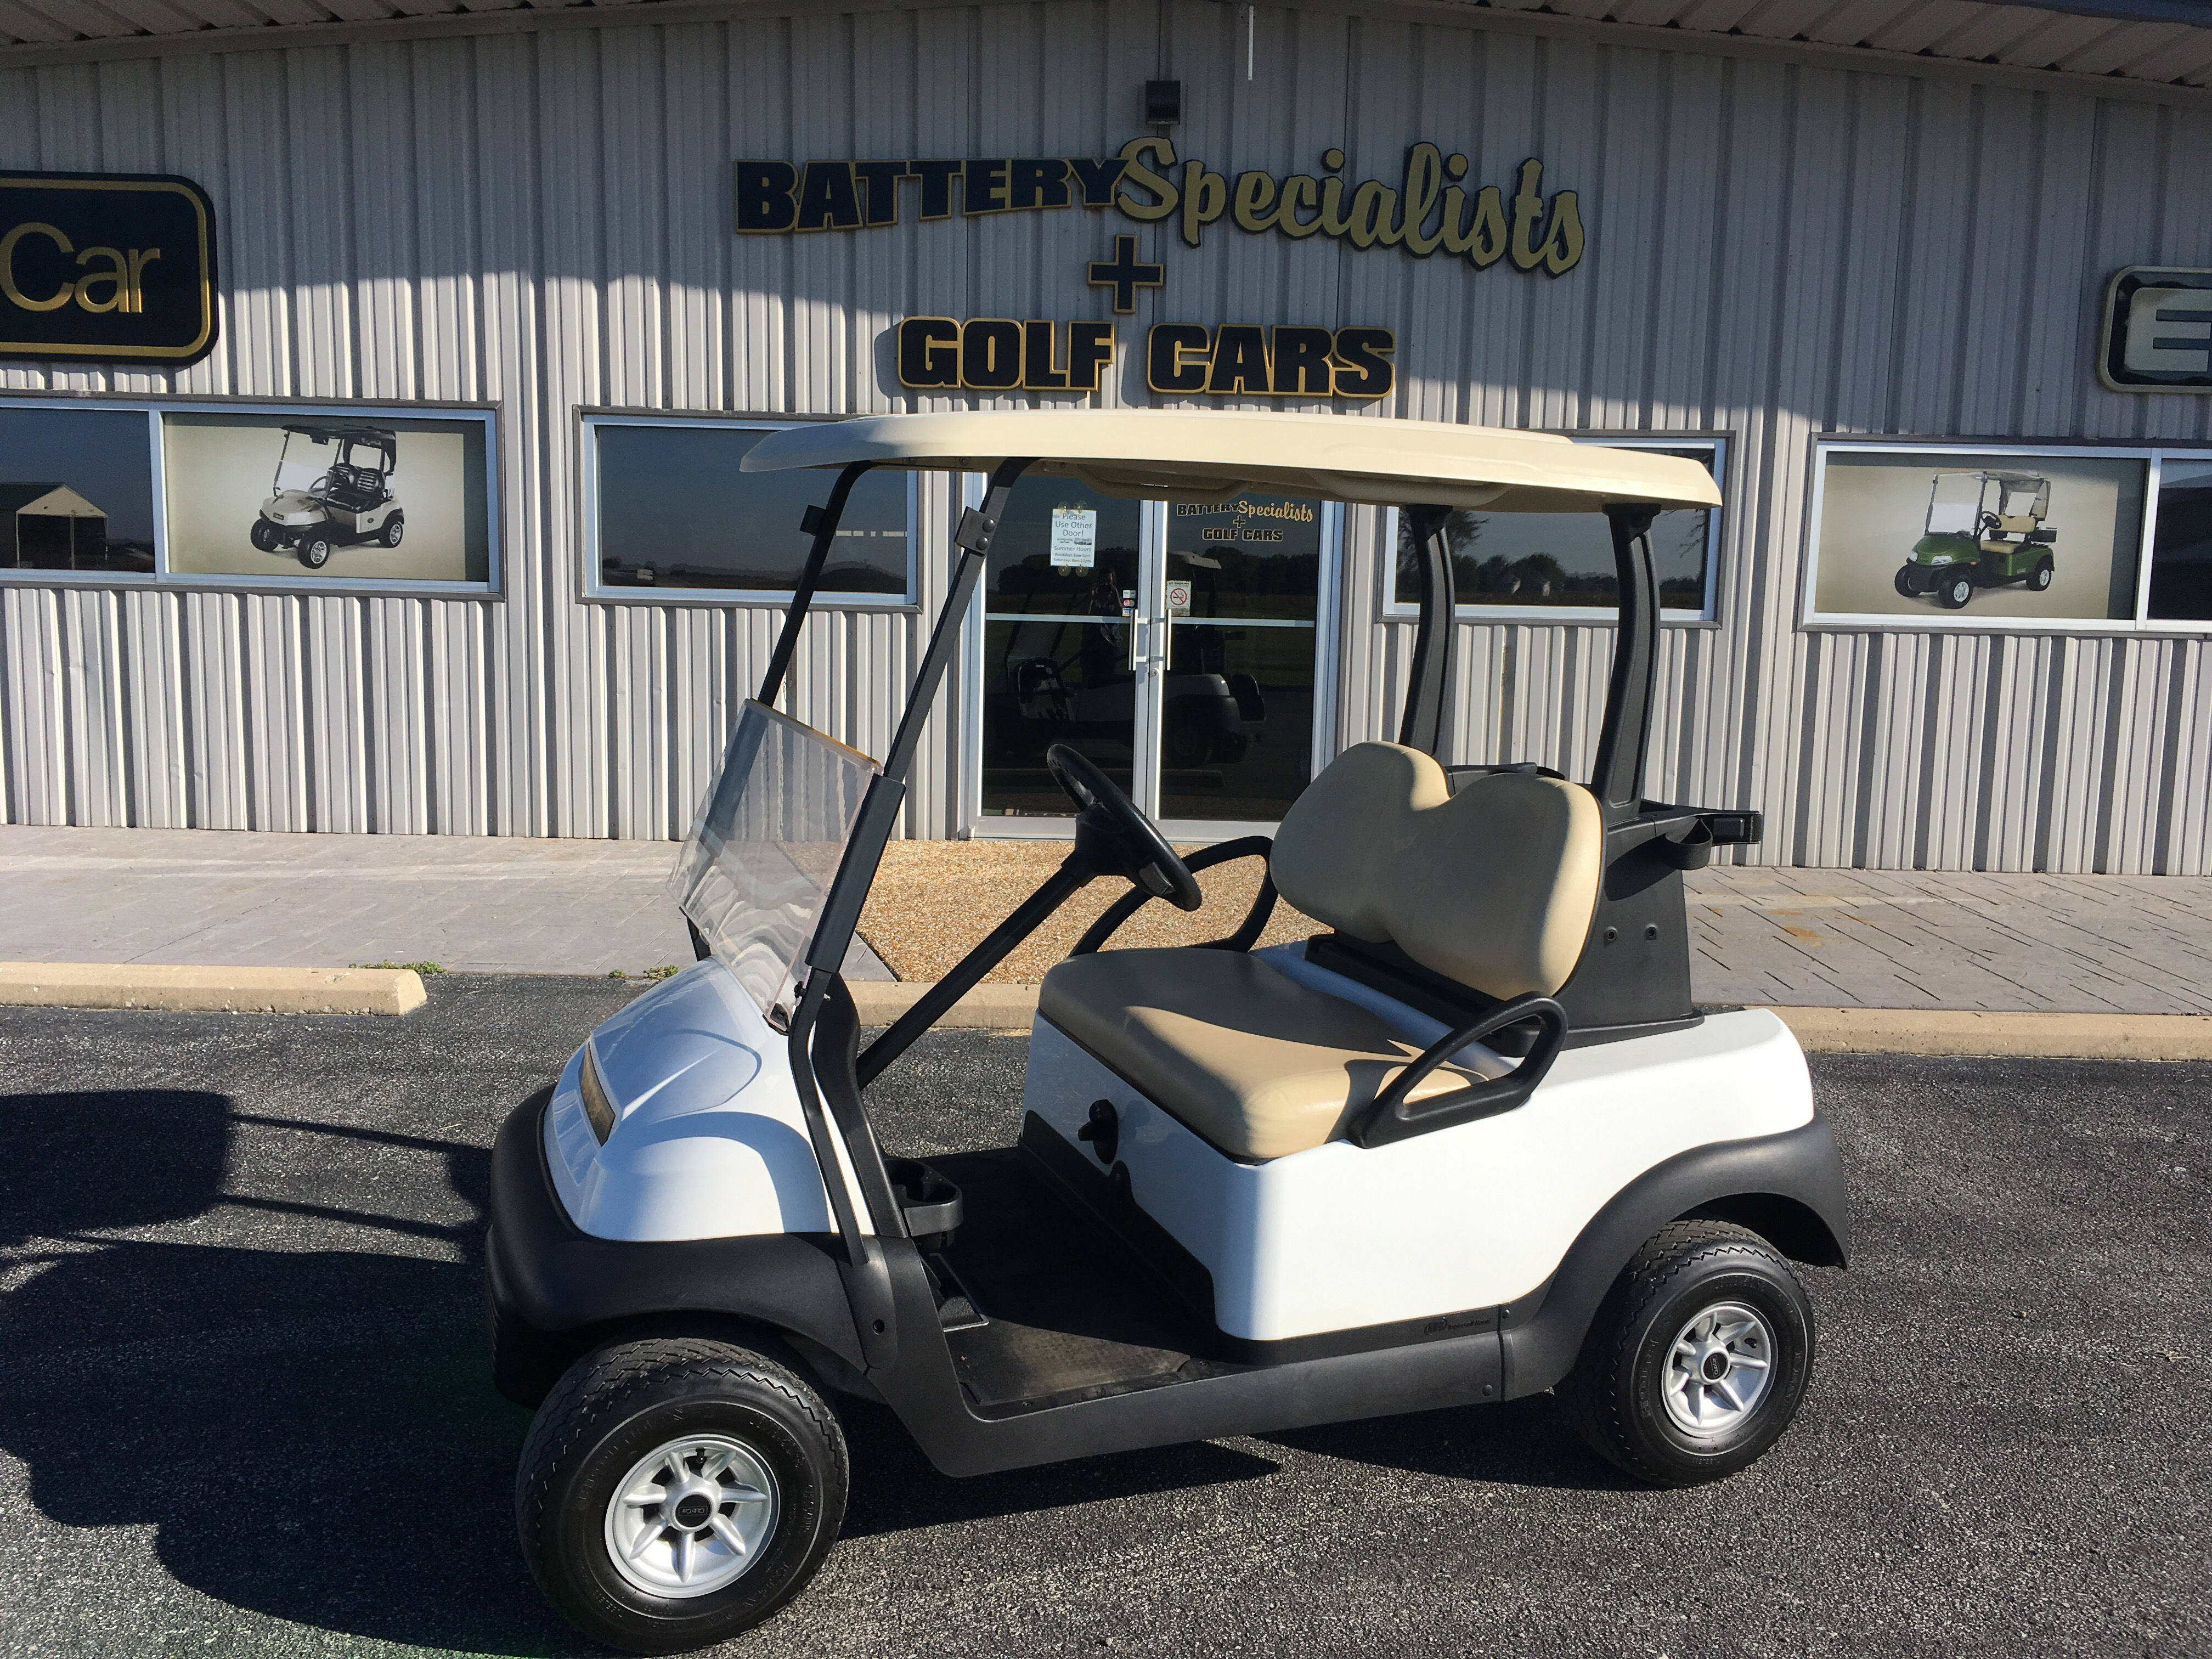 2013 White Club Car Precedent GAS Golf Cart $4695